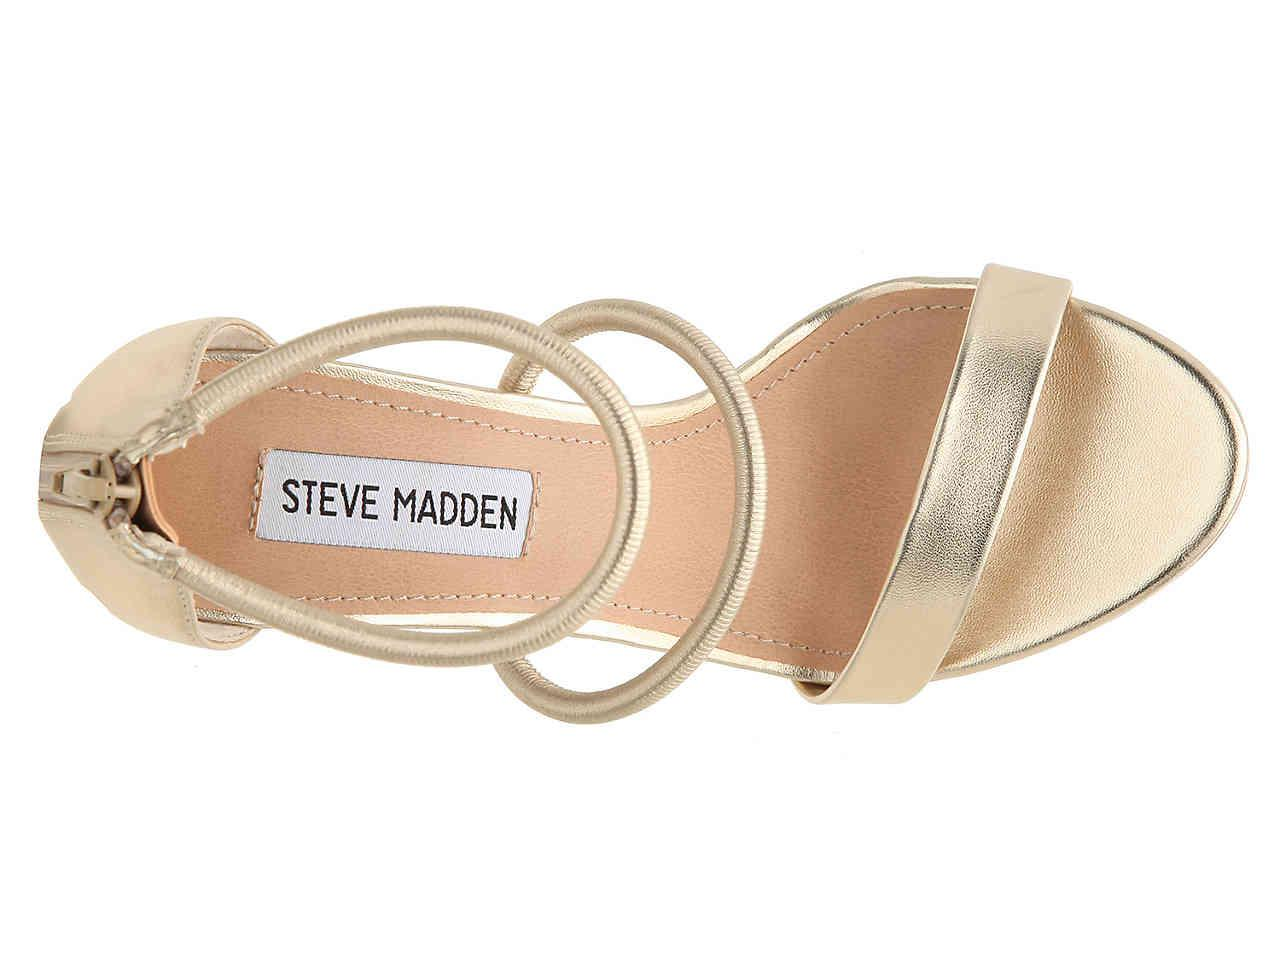 3d5739d121 Steve Madden Clay Sandal in Metallic - Lyst